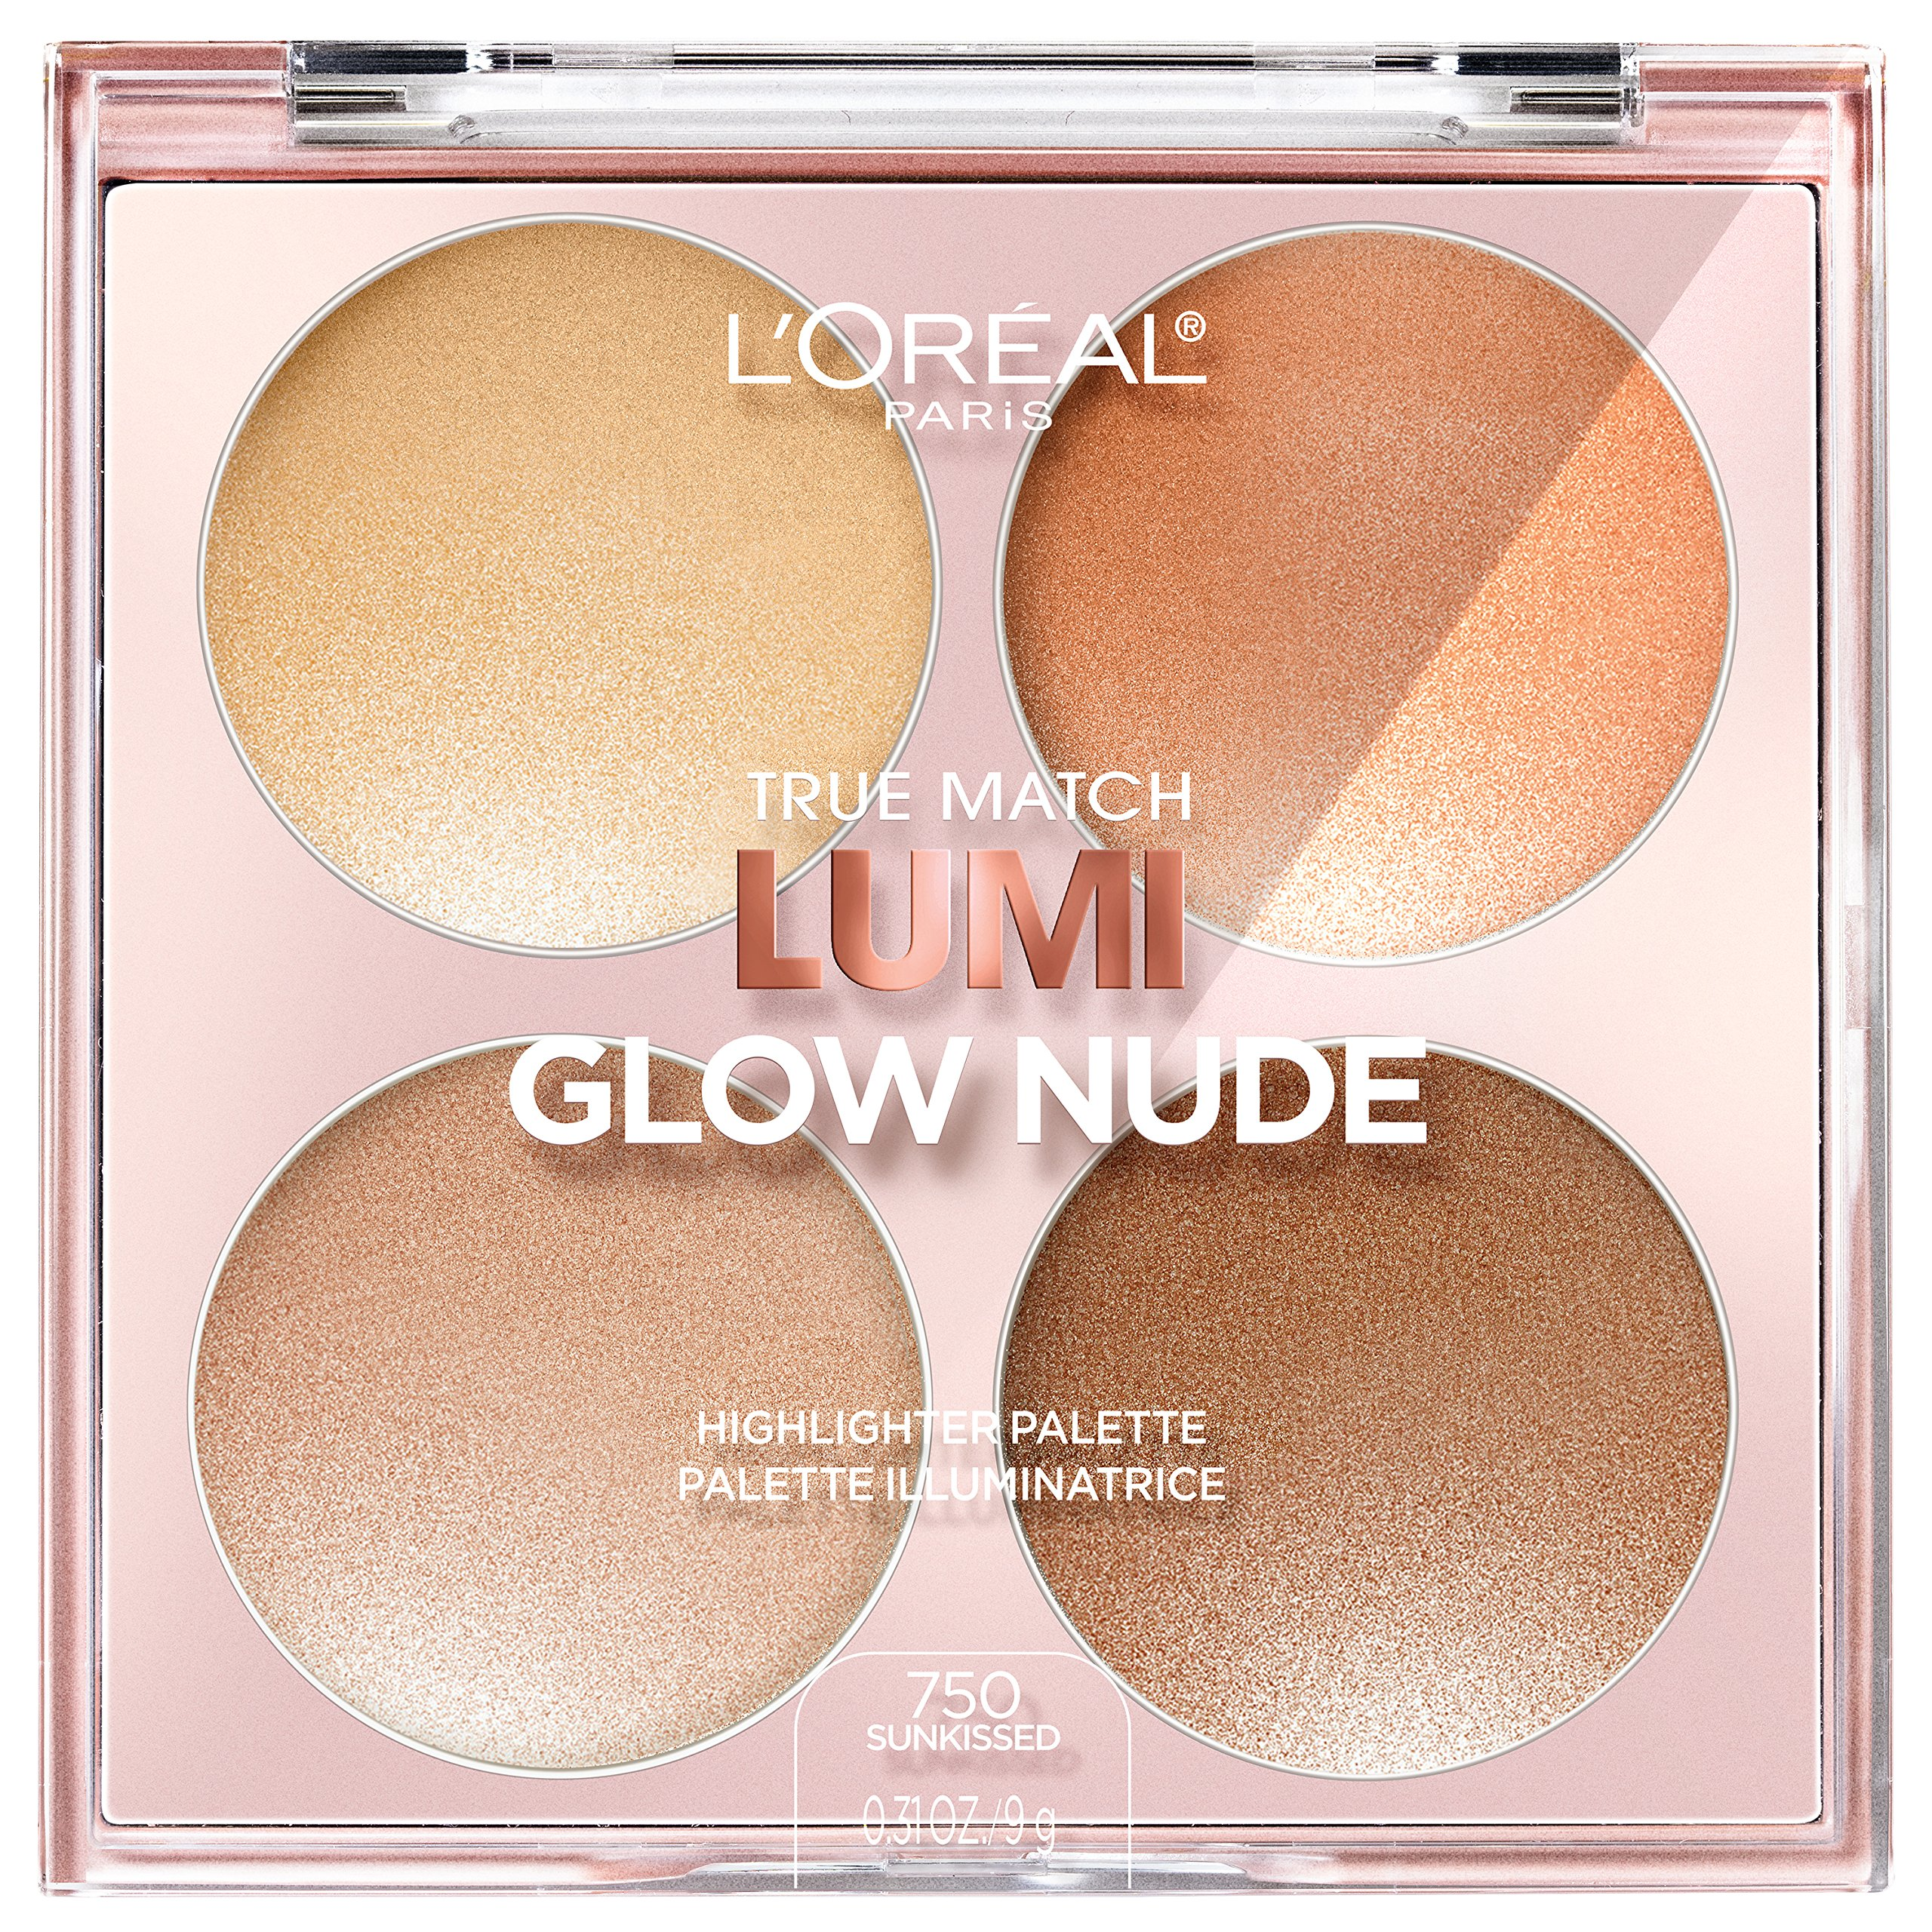 L'Oreal Paris - True Match Lumi Glow Nude Highlighter Palette